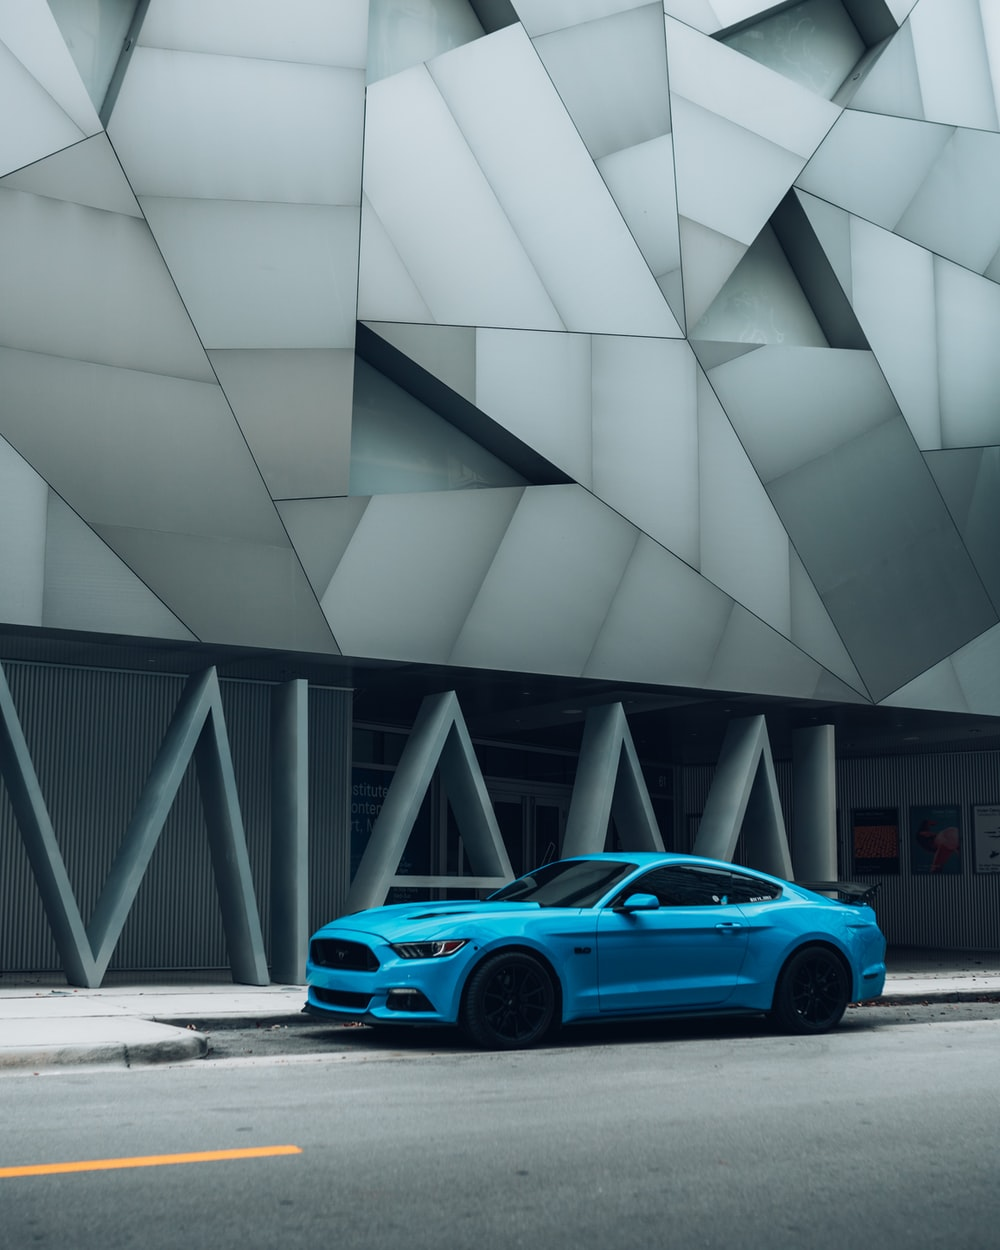 blue coupe parked beside gray building